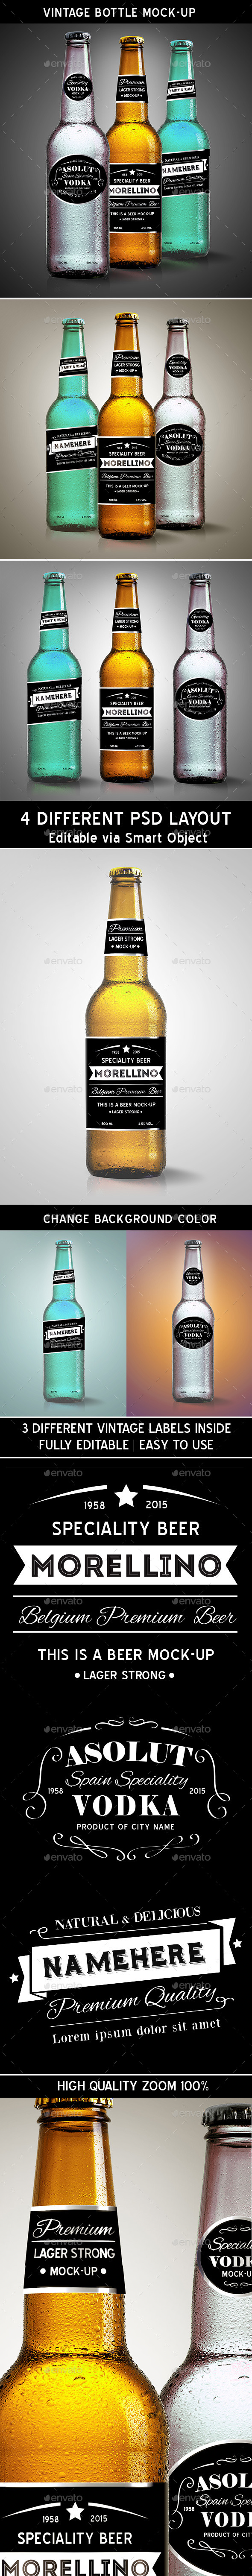 GraphicRiver Vintage Bottle Mock-up 11284746